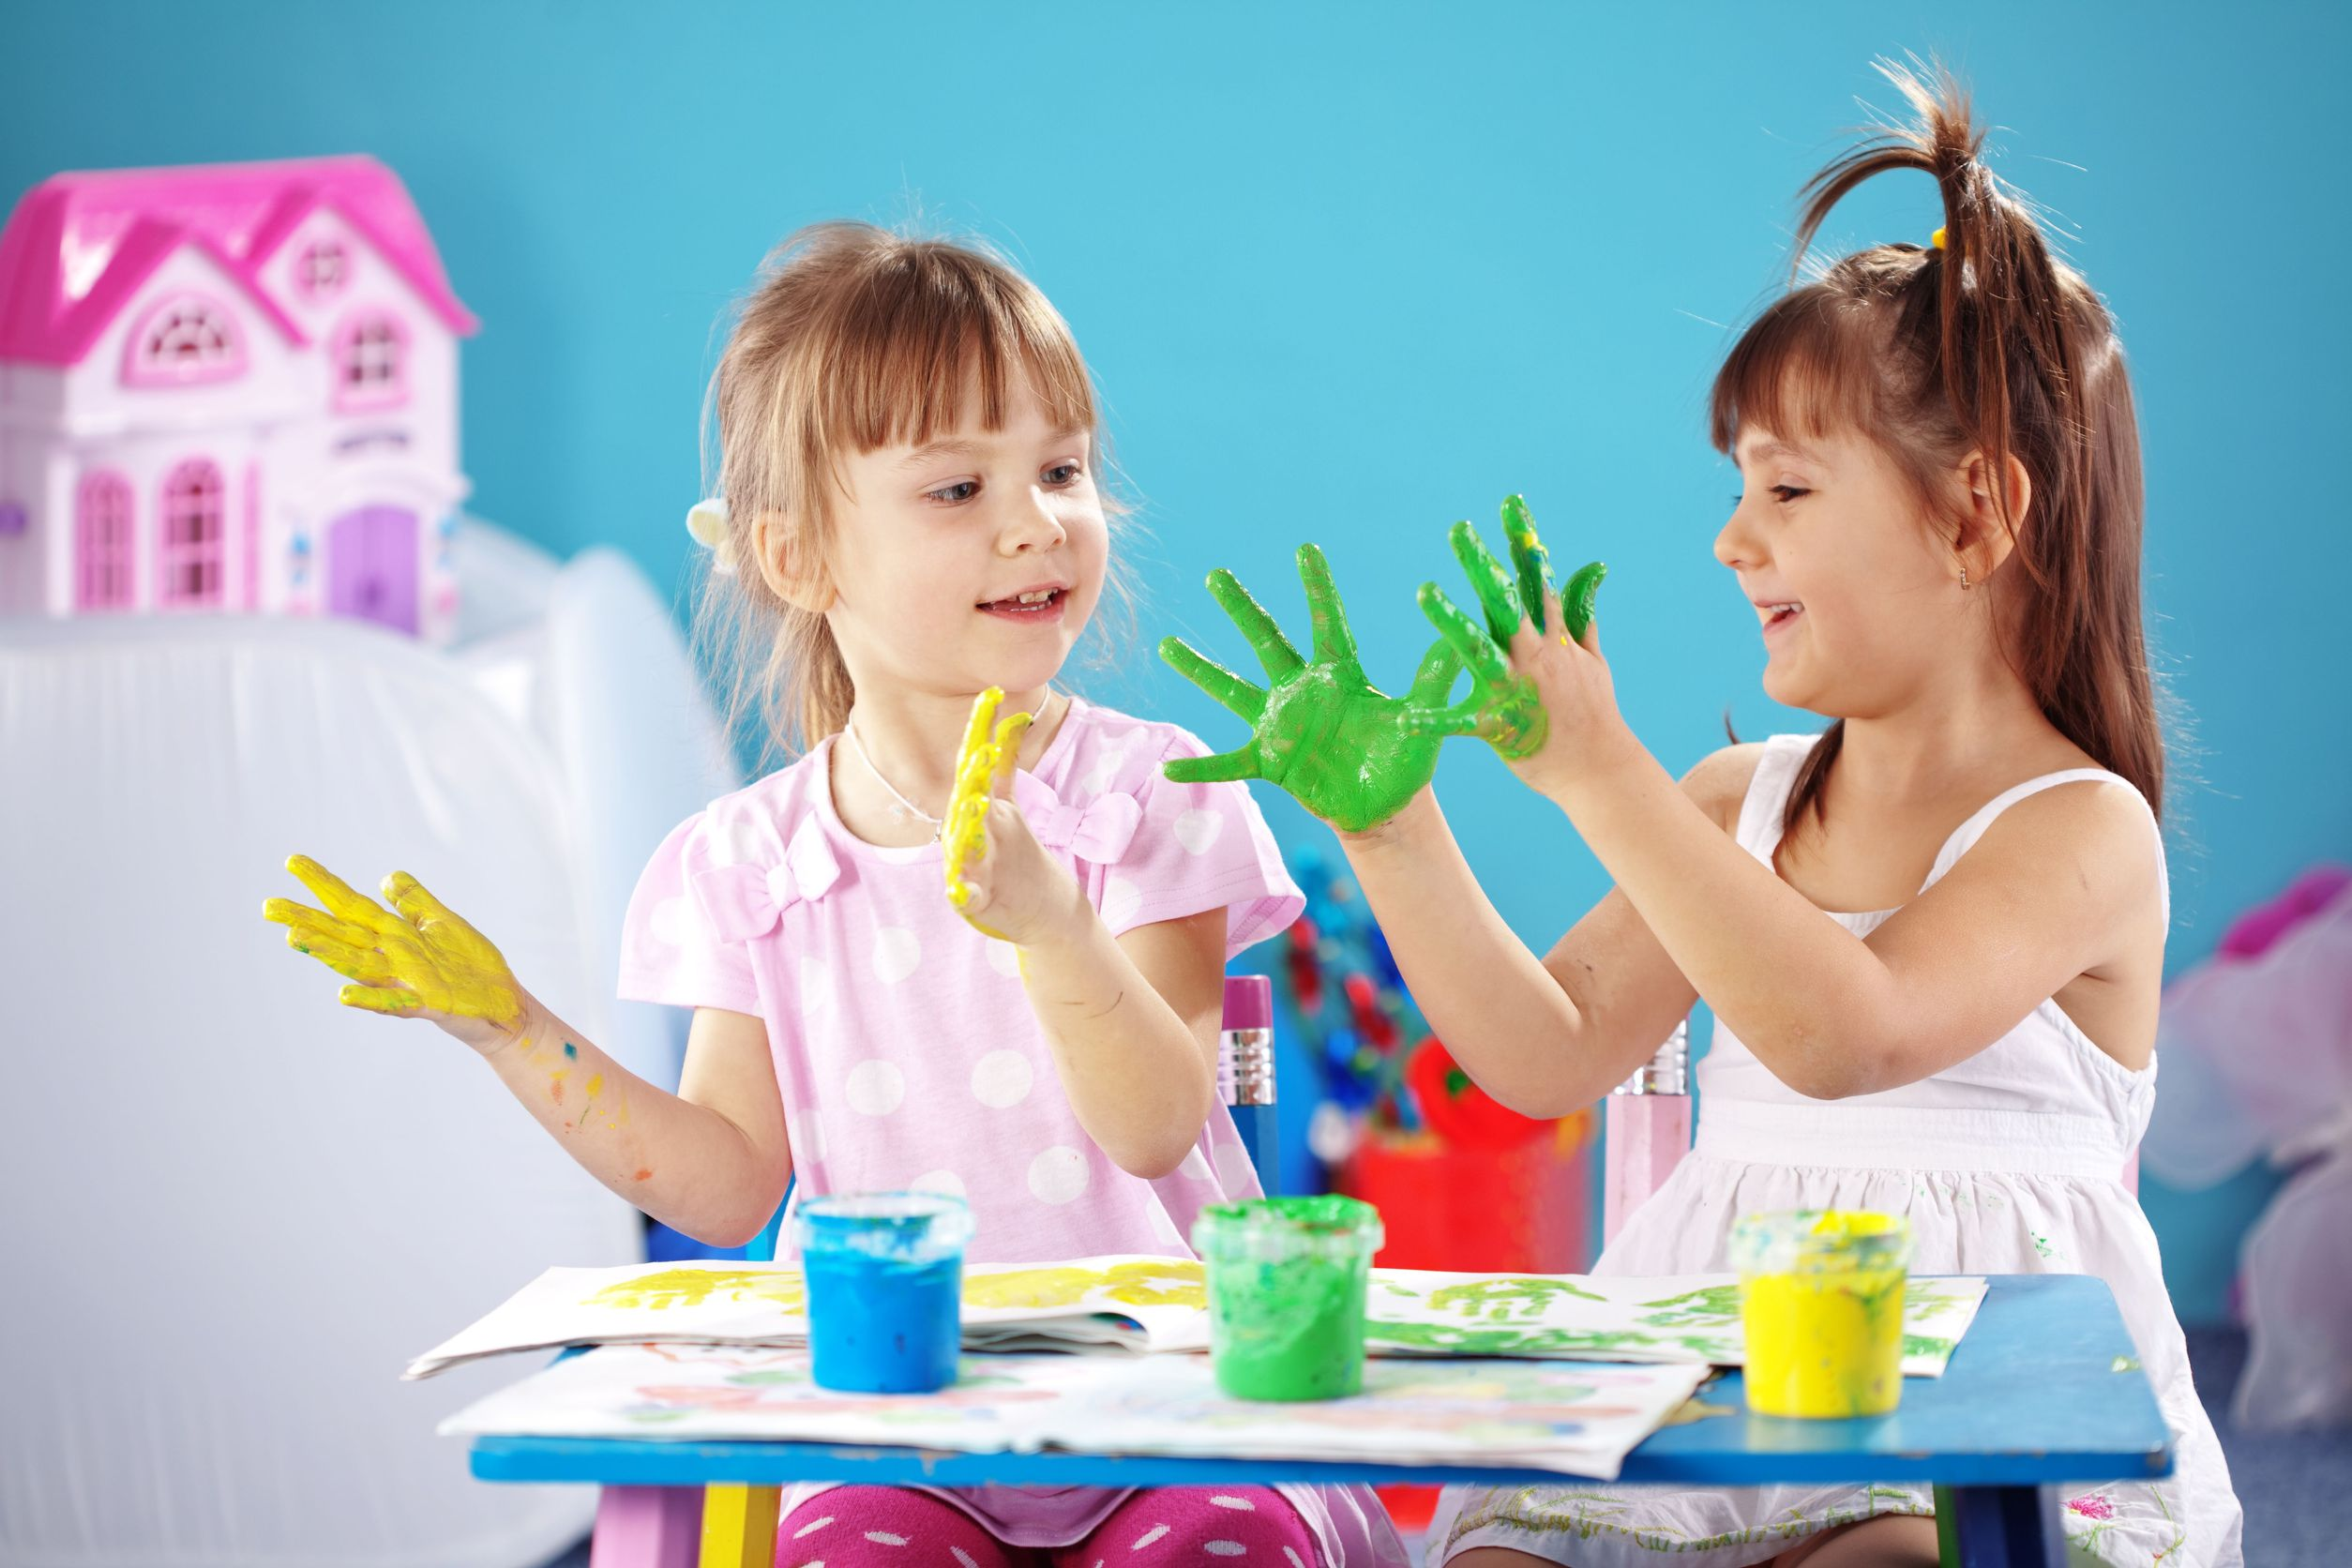 How To Run a Successful Childcare Business